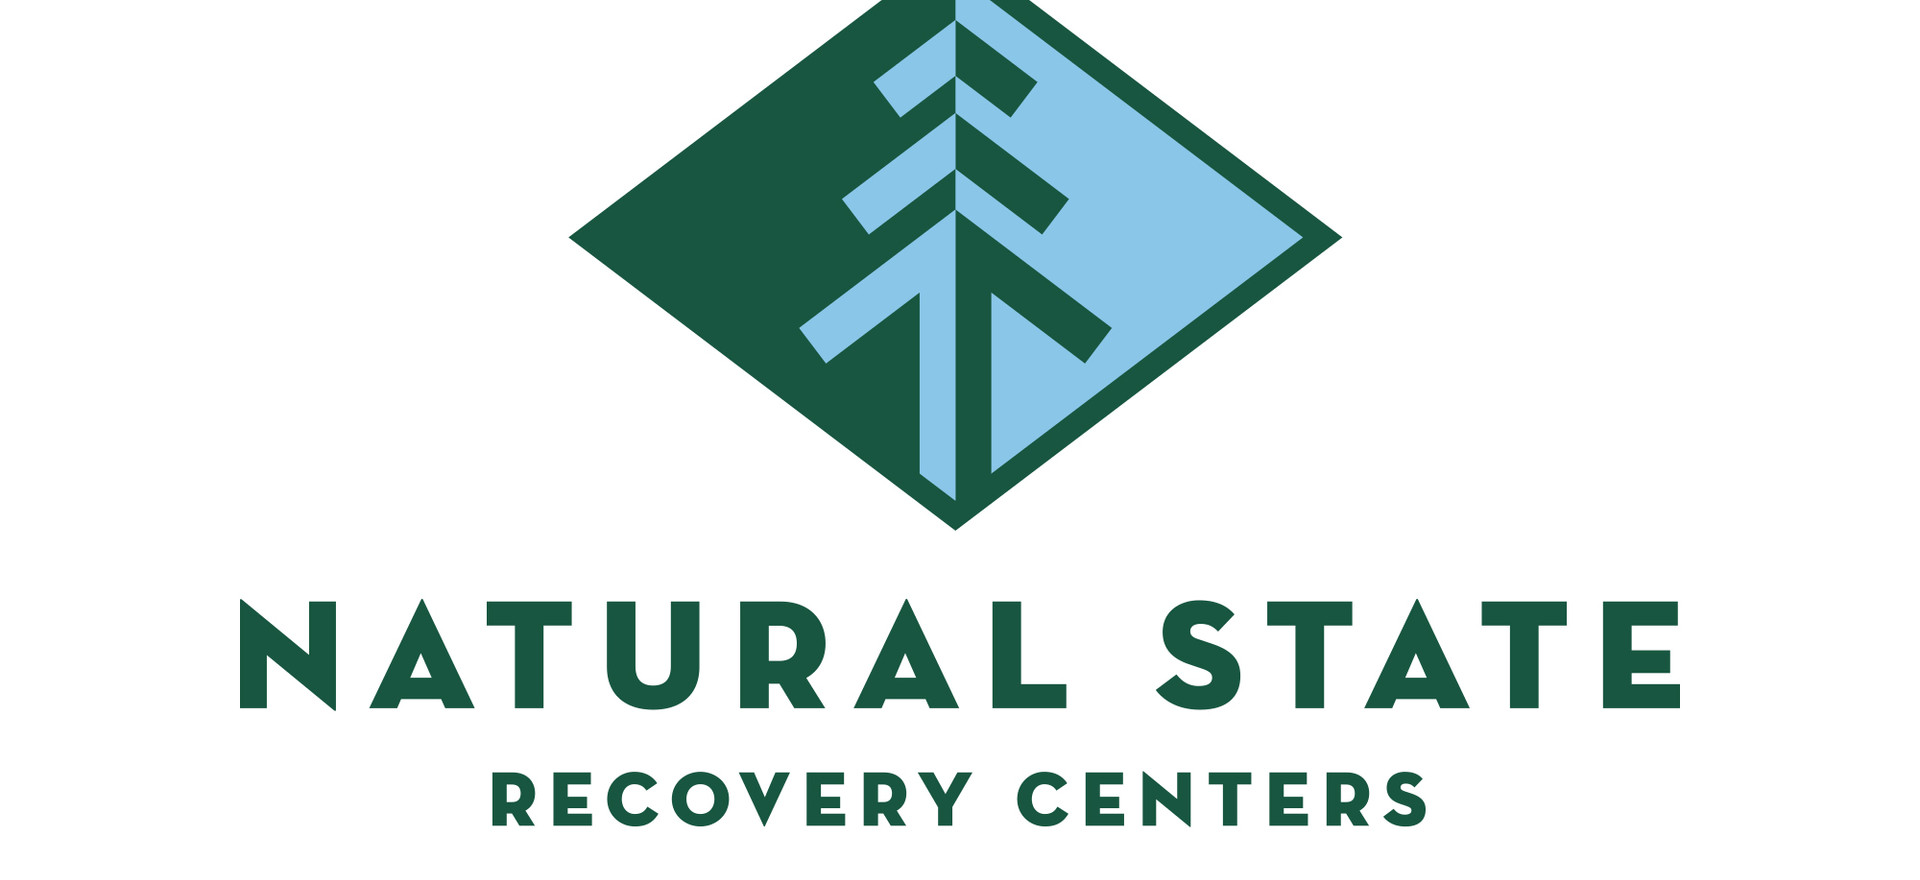 natural state recovery centers logo